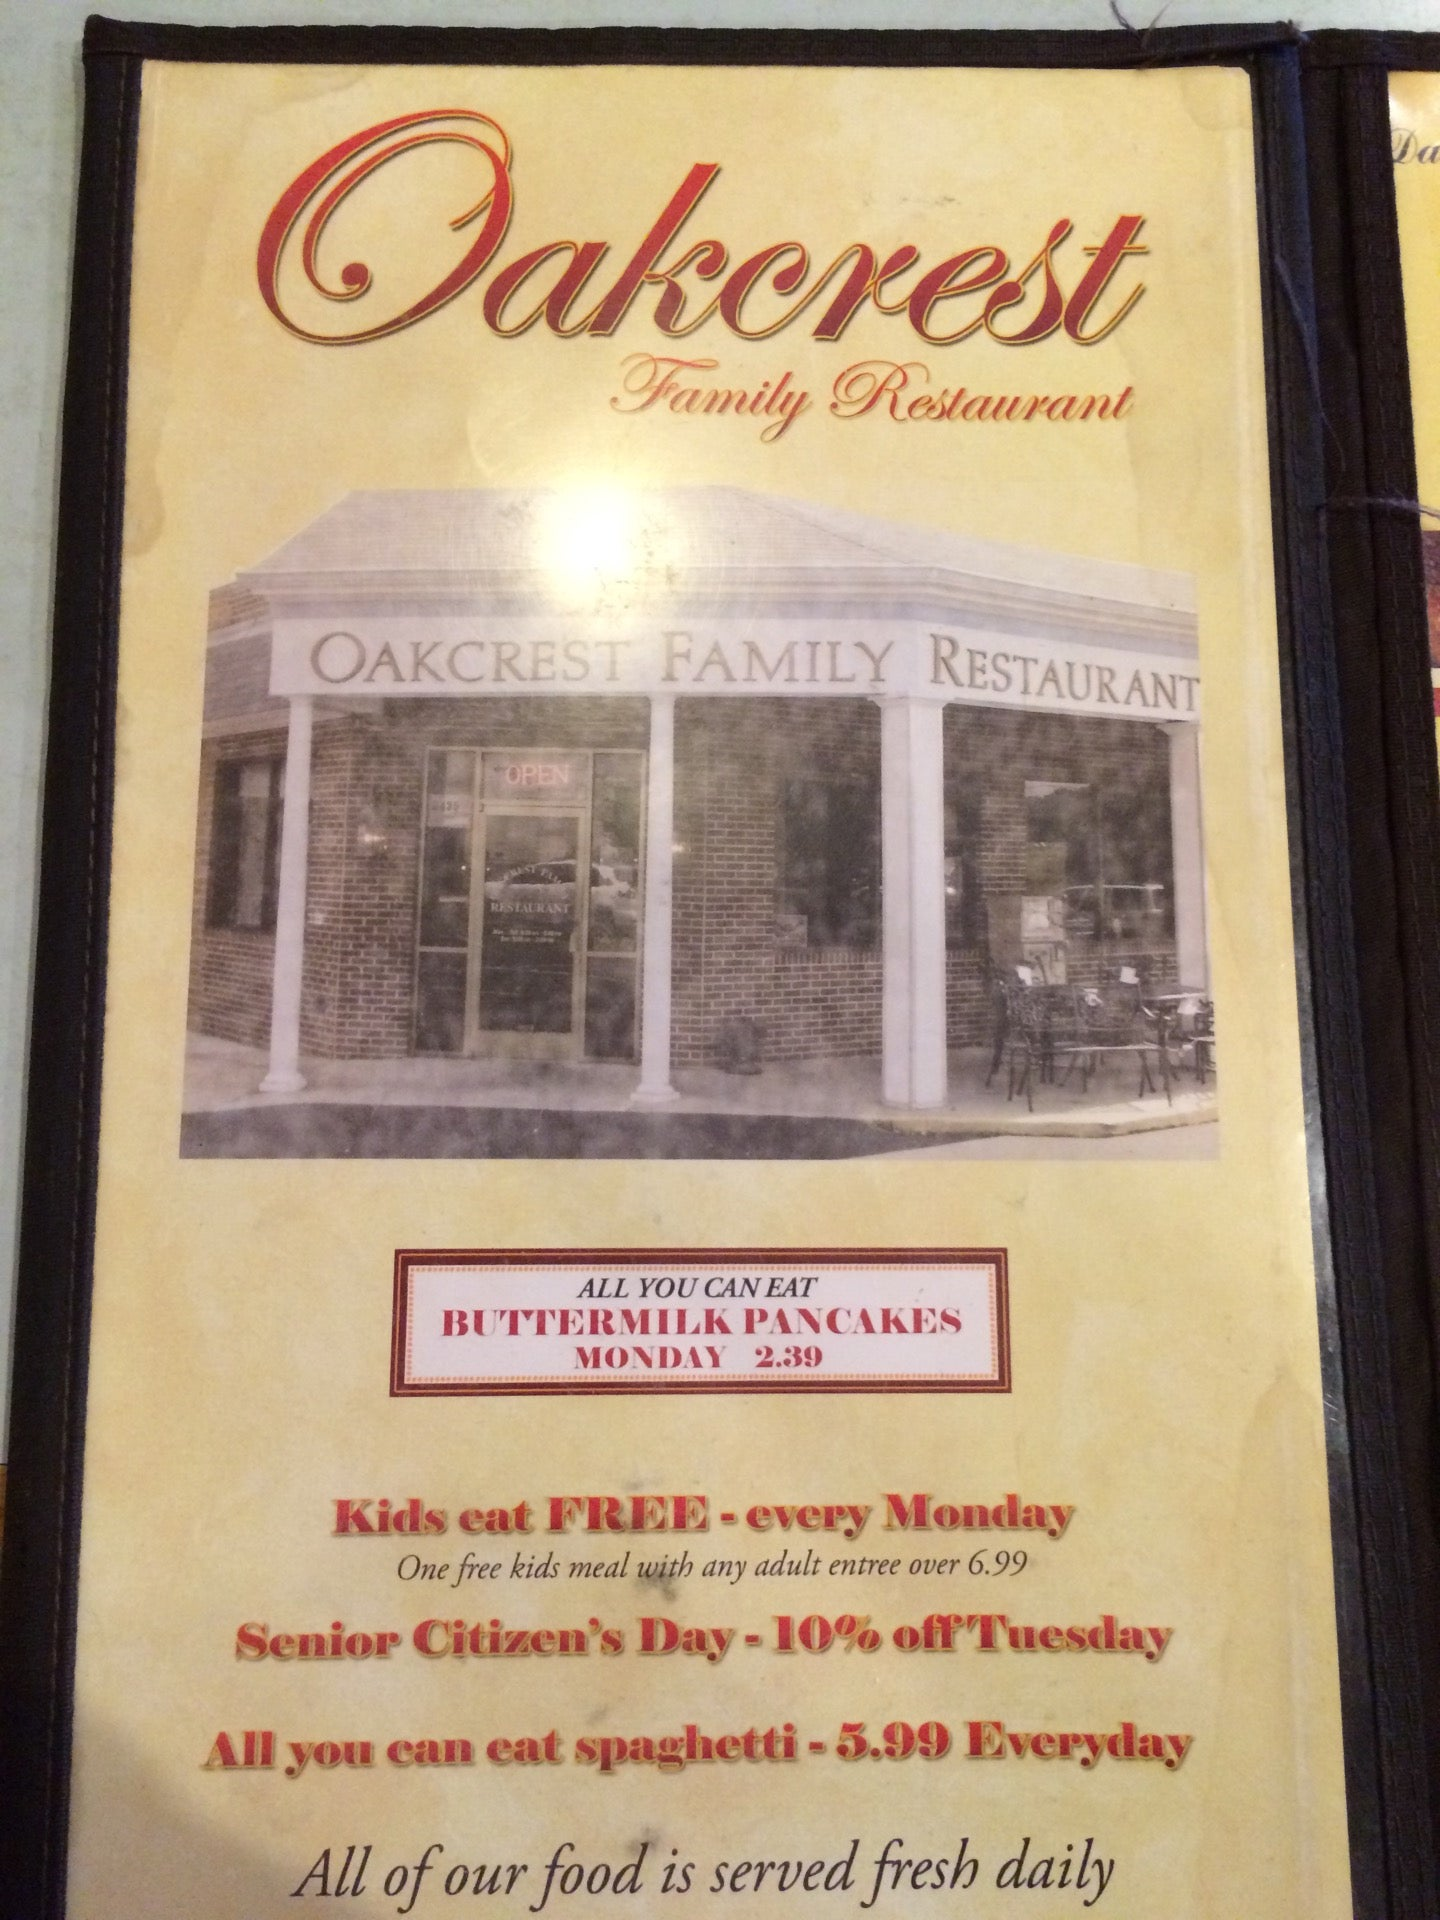 Outstanding Oakcrest Family Restaurant In Greensboro Parent Reviews On Download Free Architecture Designs Scobabritishbridgeorg